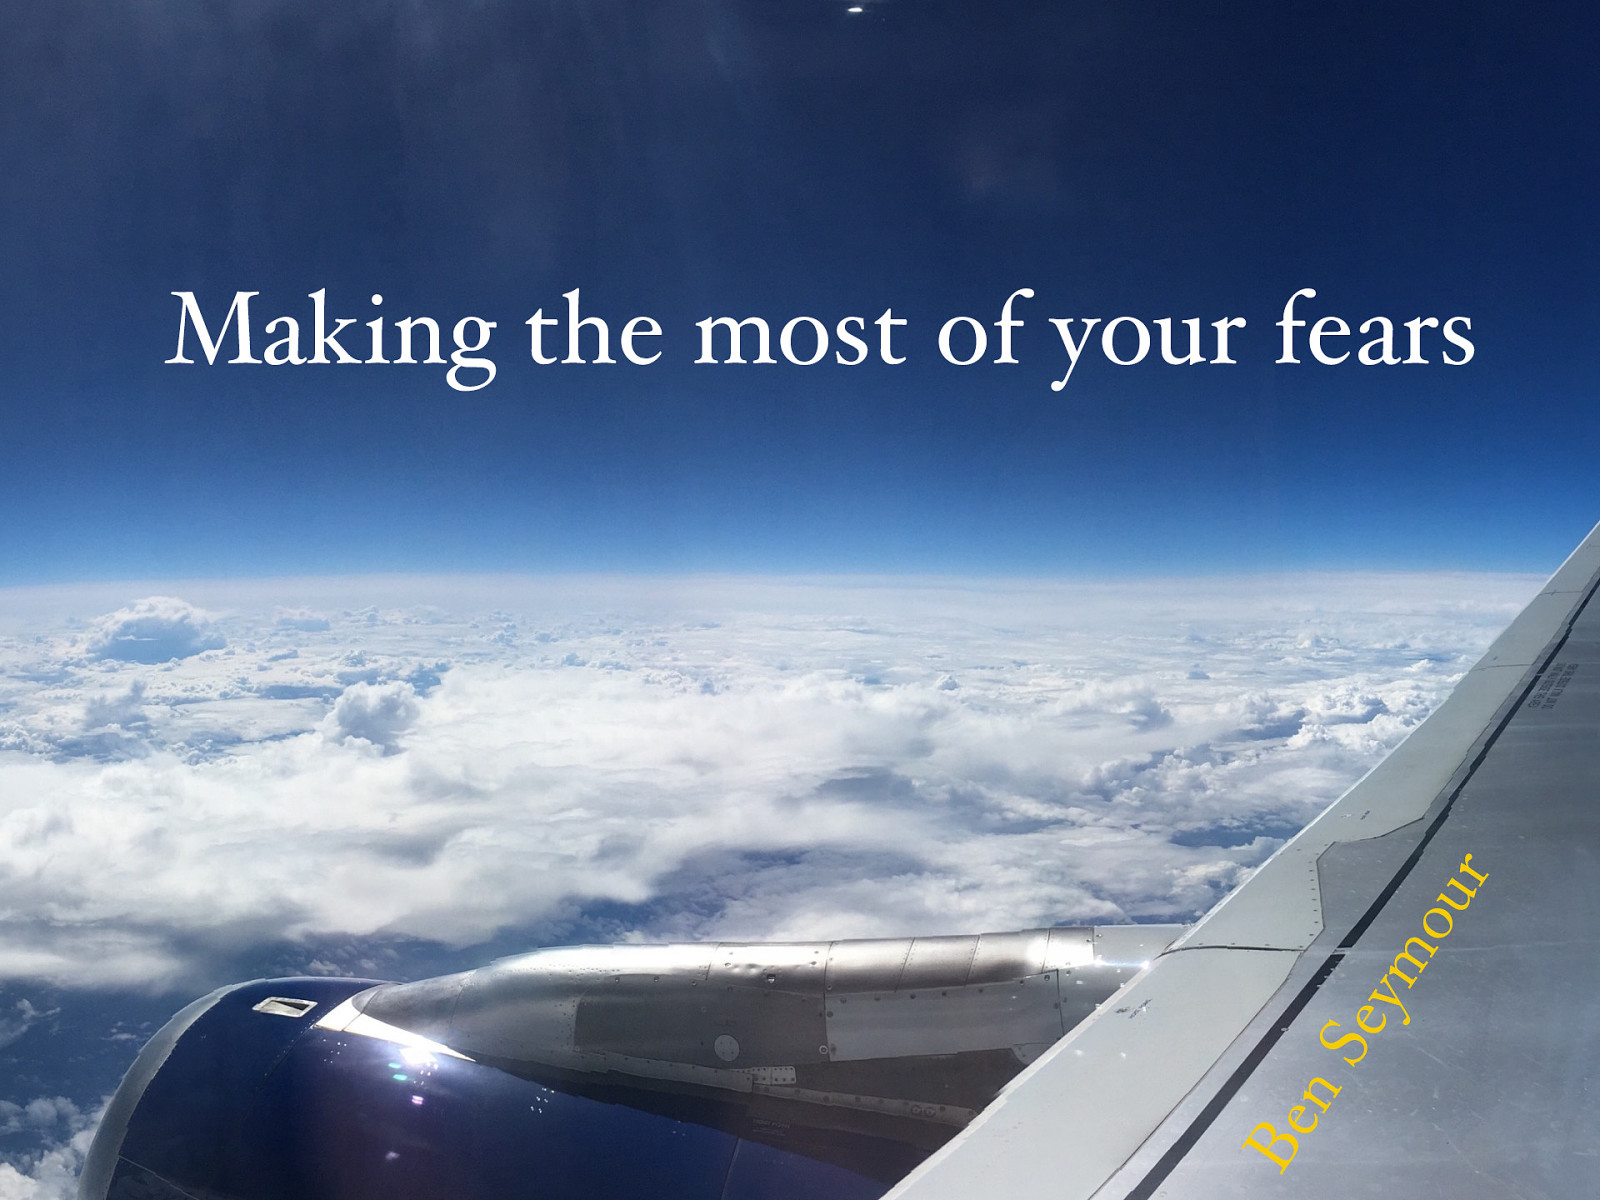 Making the Most of Your Fears